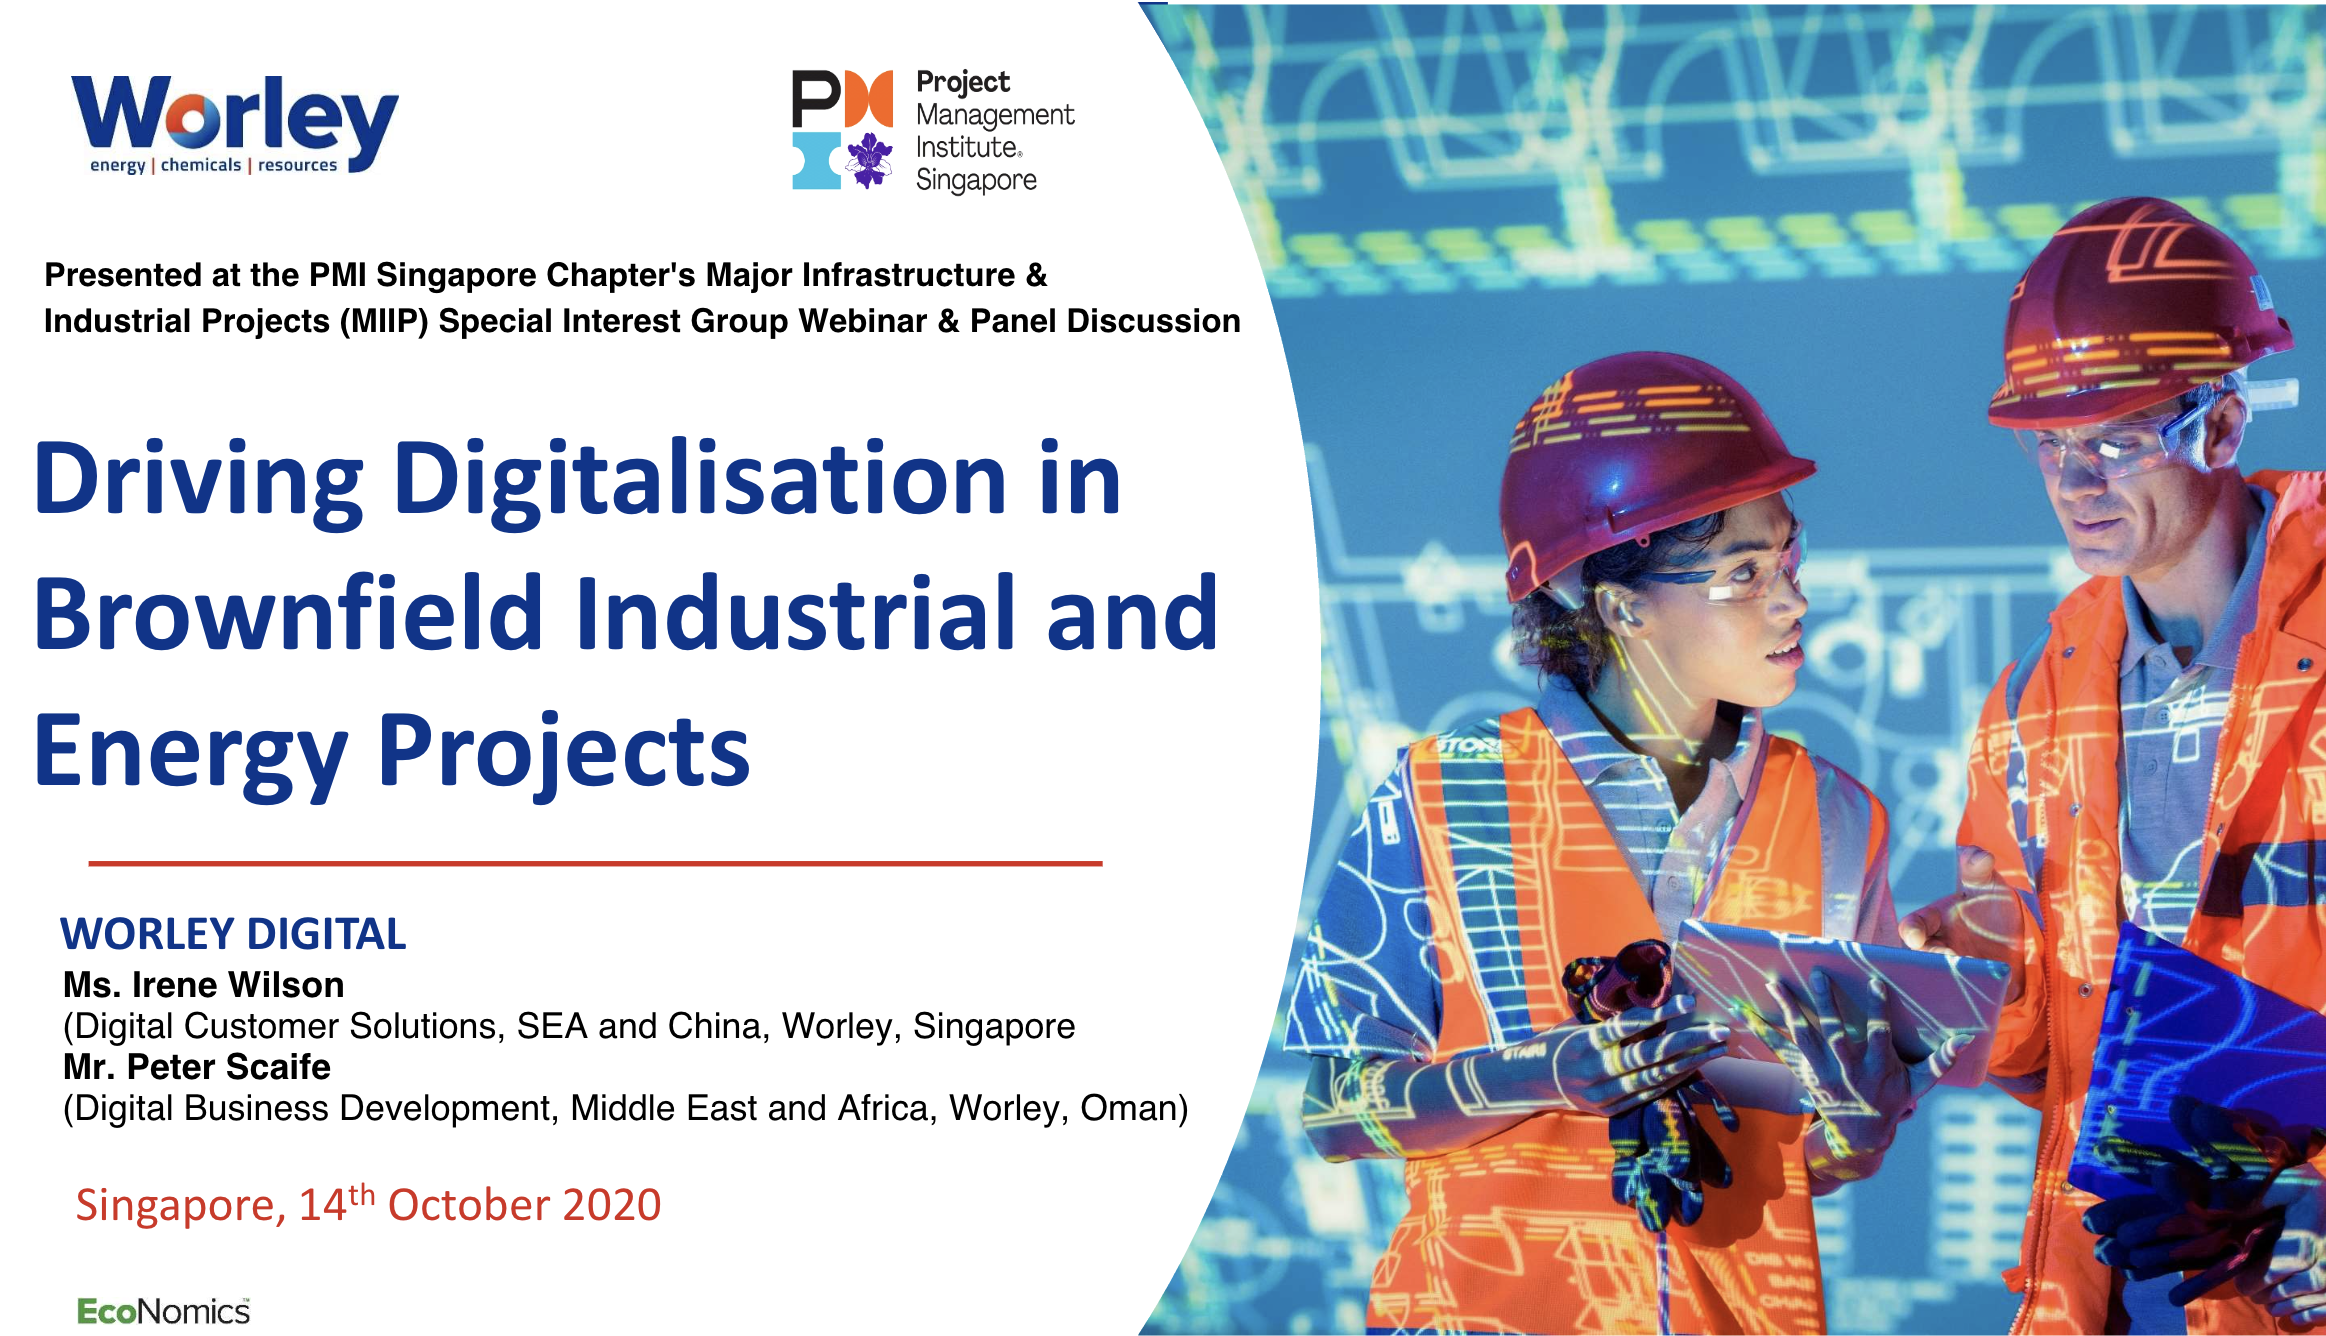 MIIP DrivingDigitalisation in Brownfield Industrial and Energy projects slides